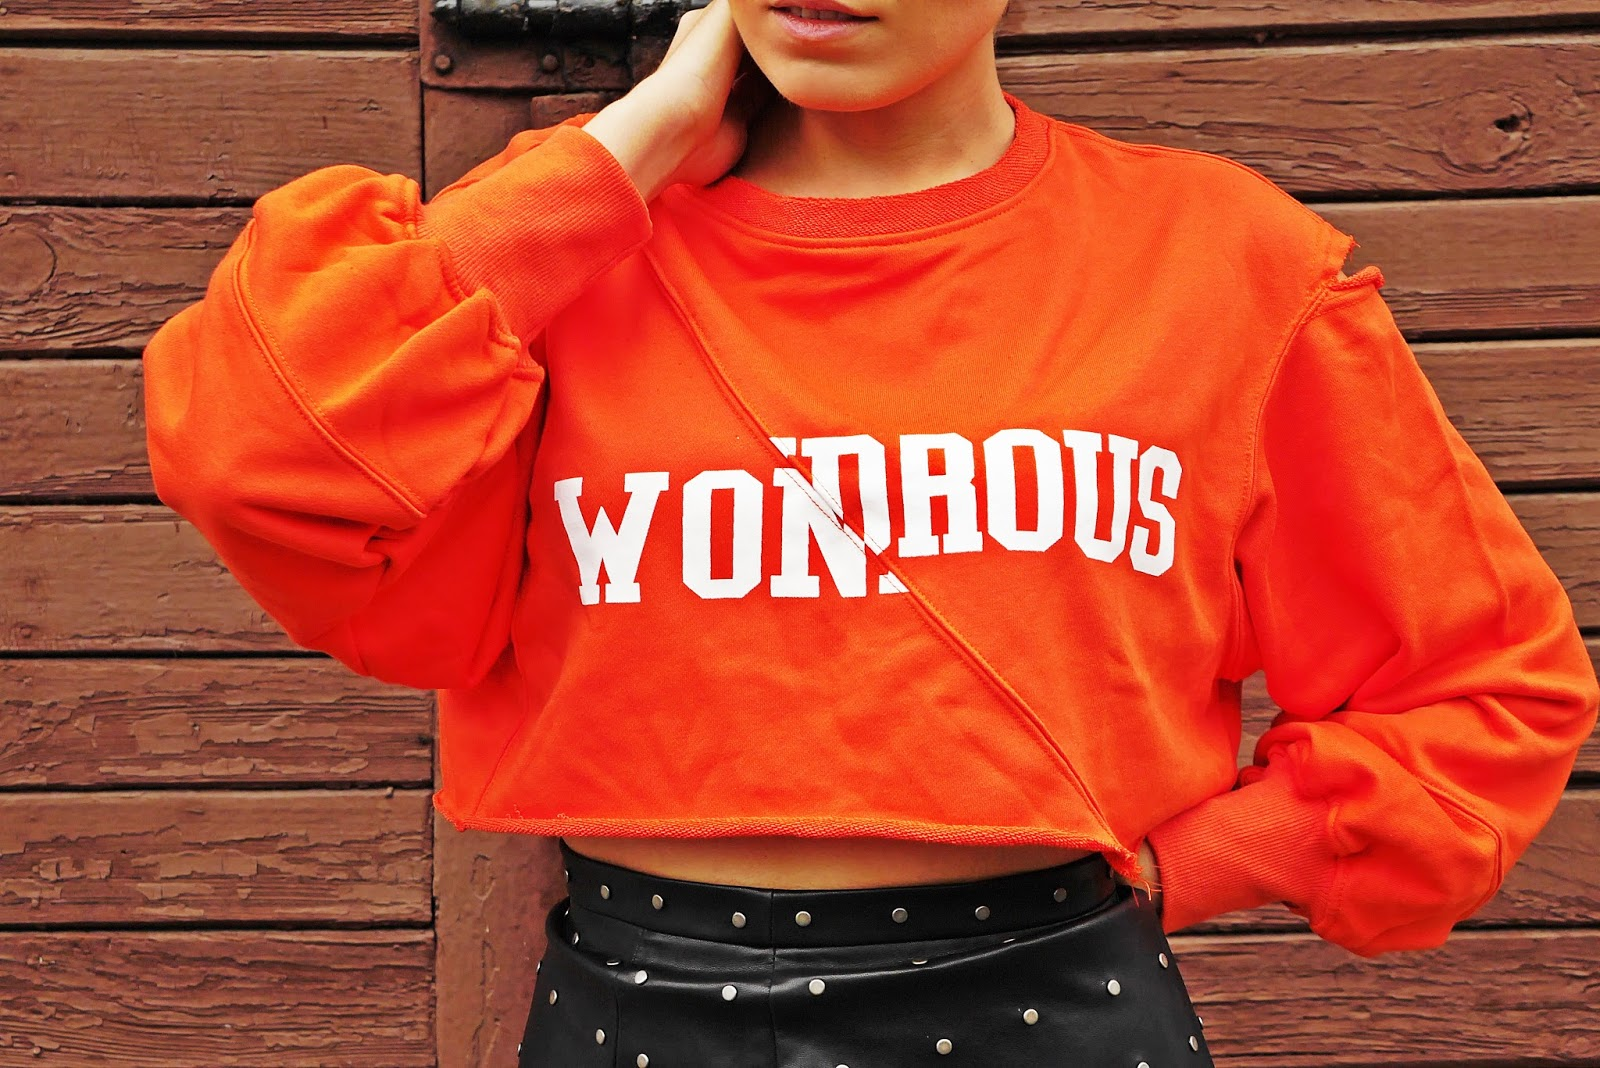 4_leather_skirt_crop_top_orange_hoodies_letter_karyn_blog_modowy_111017d